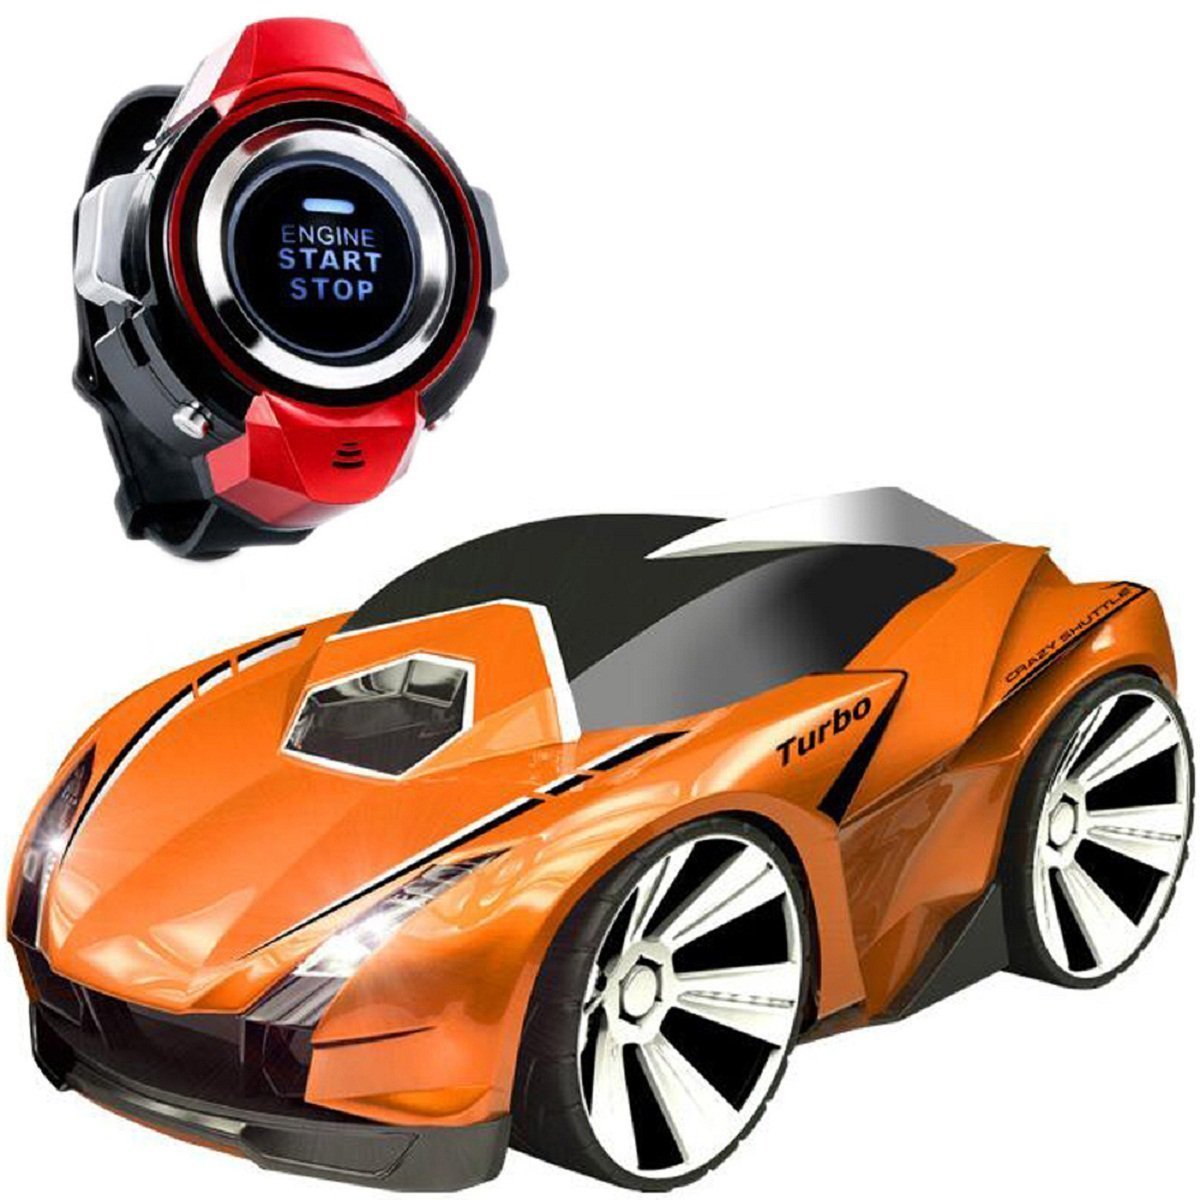 Voice Command Car, Megadream Rechargable Smart Watch Voice-activated Remote Control Toy Vehicles with Start Engine & Brake Sound, Spotlight, Drift Mode for ...